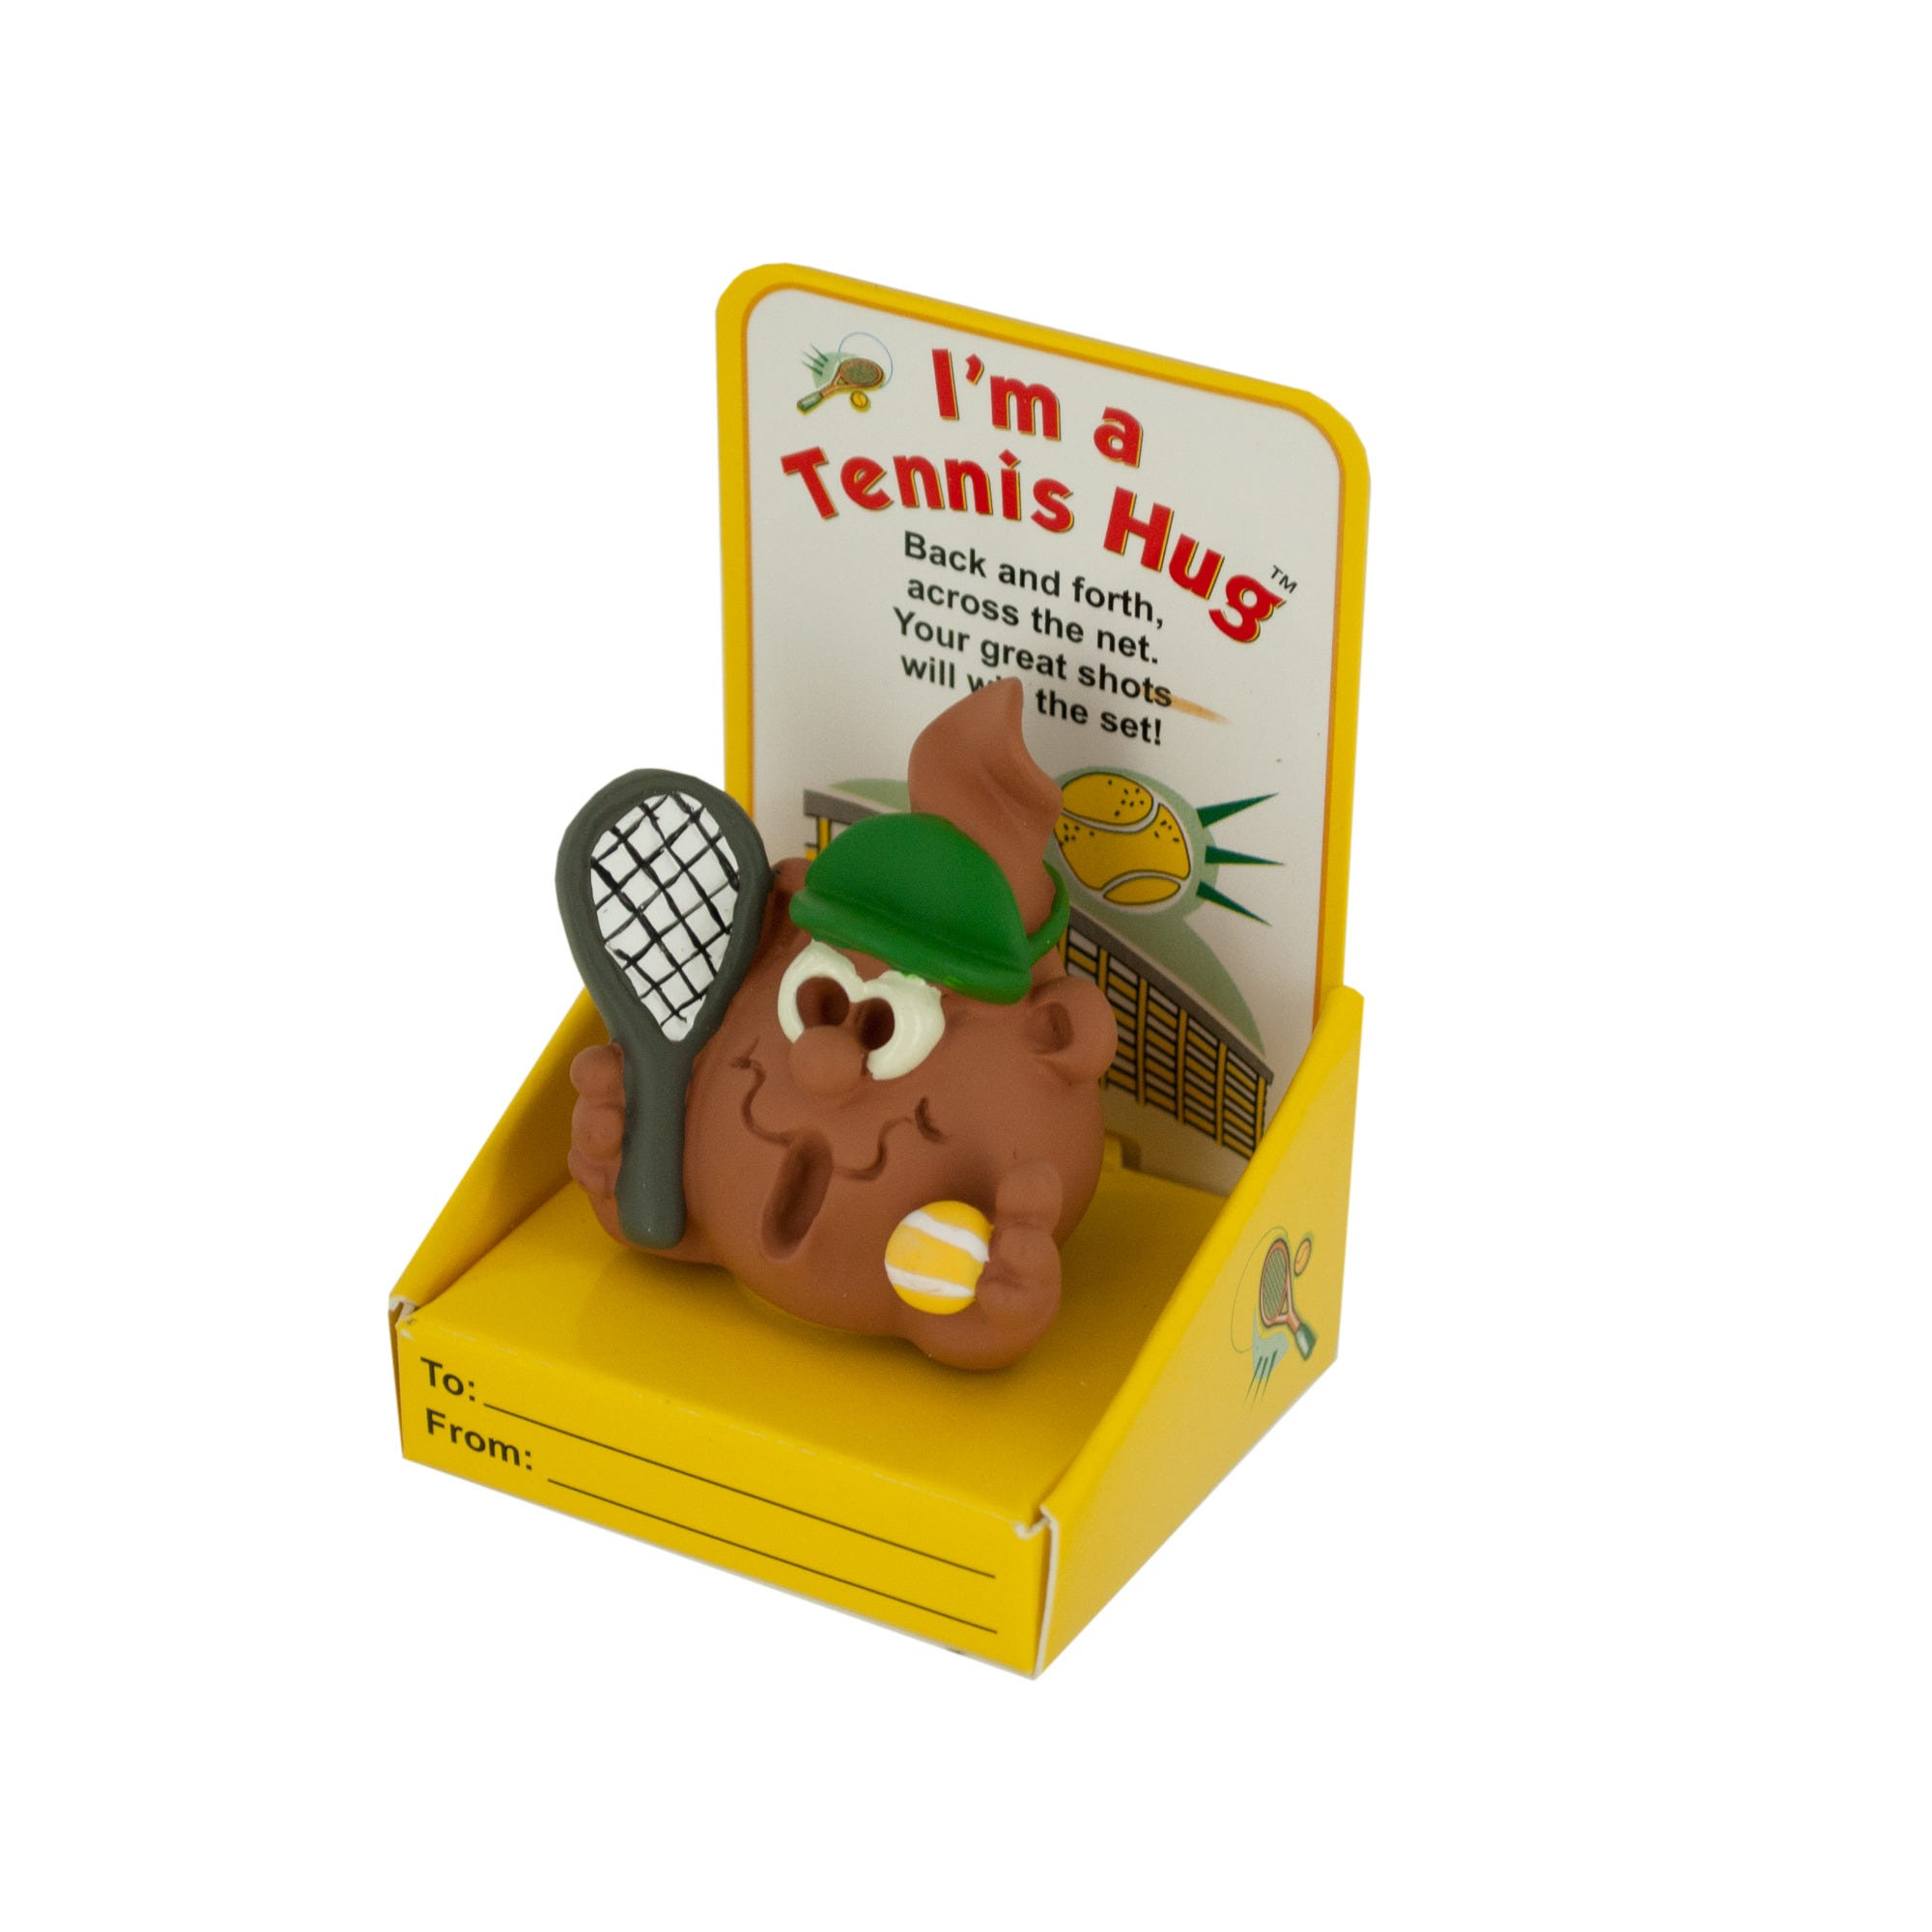 Tennis Hug FIGURINE with Gift Boxes Countertop Display- Qty 24